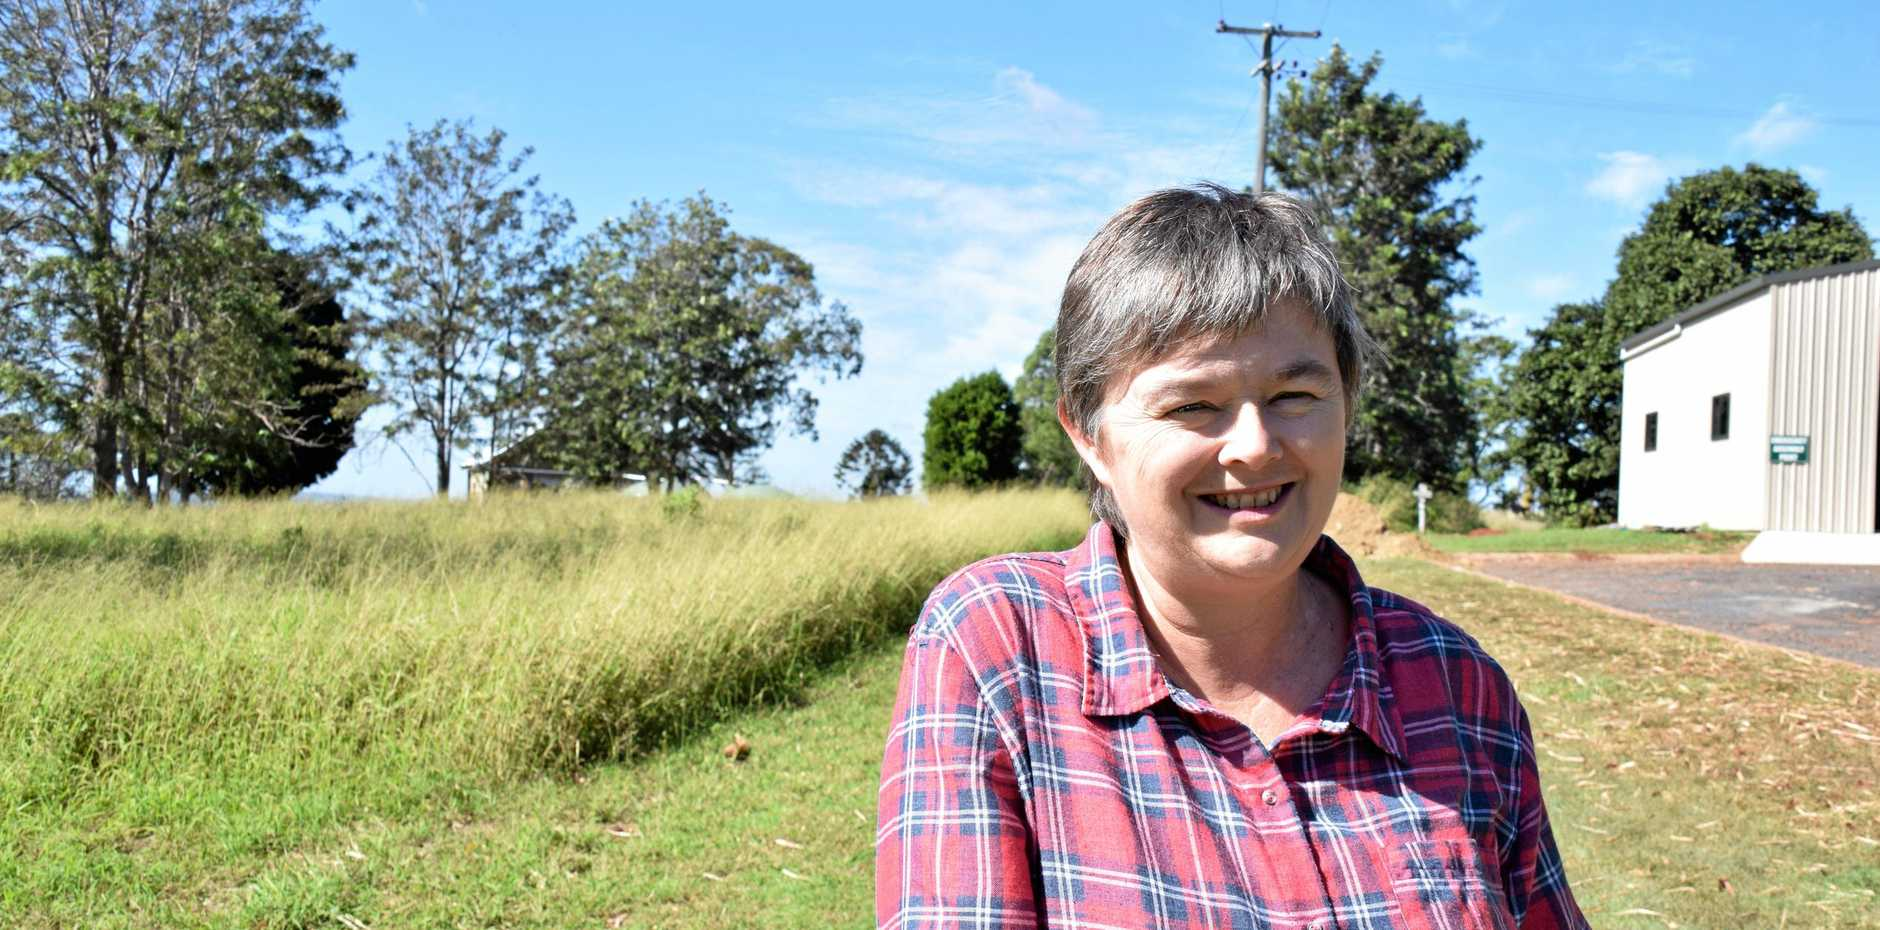 BRIGHT IDEA: Tania Paul helped start the Yarraman Business Group with the aim of bringing more investment and economic activity to the town.